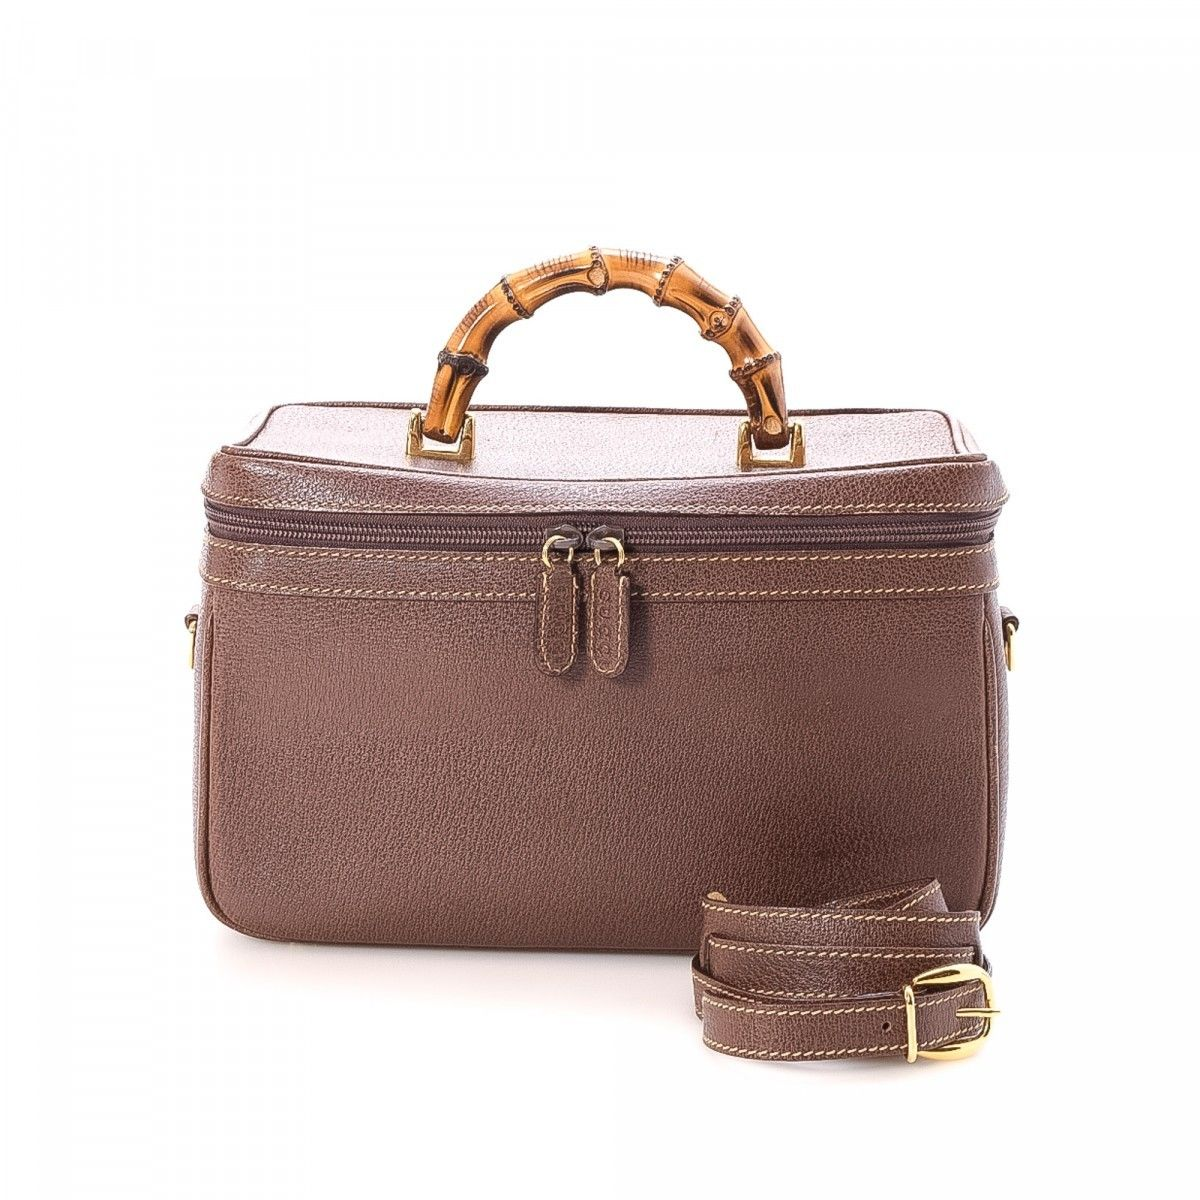 Gucci Pre-owned - Leather vanity case NupD5sgcs0